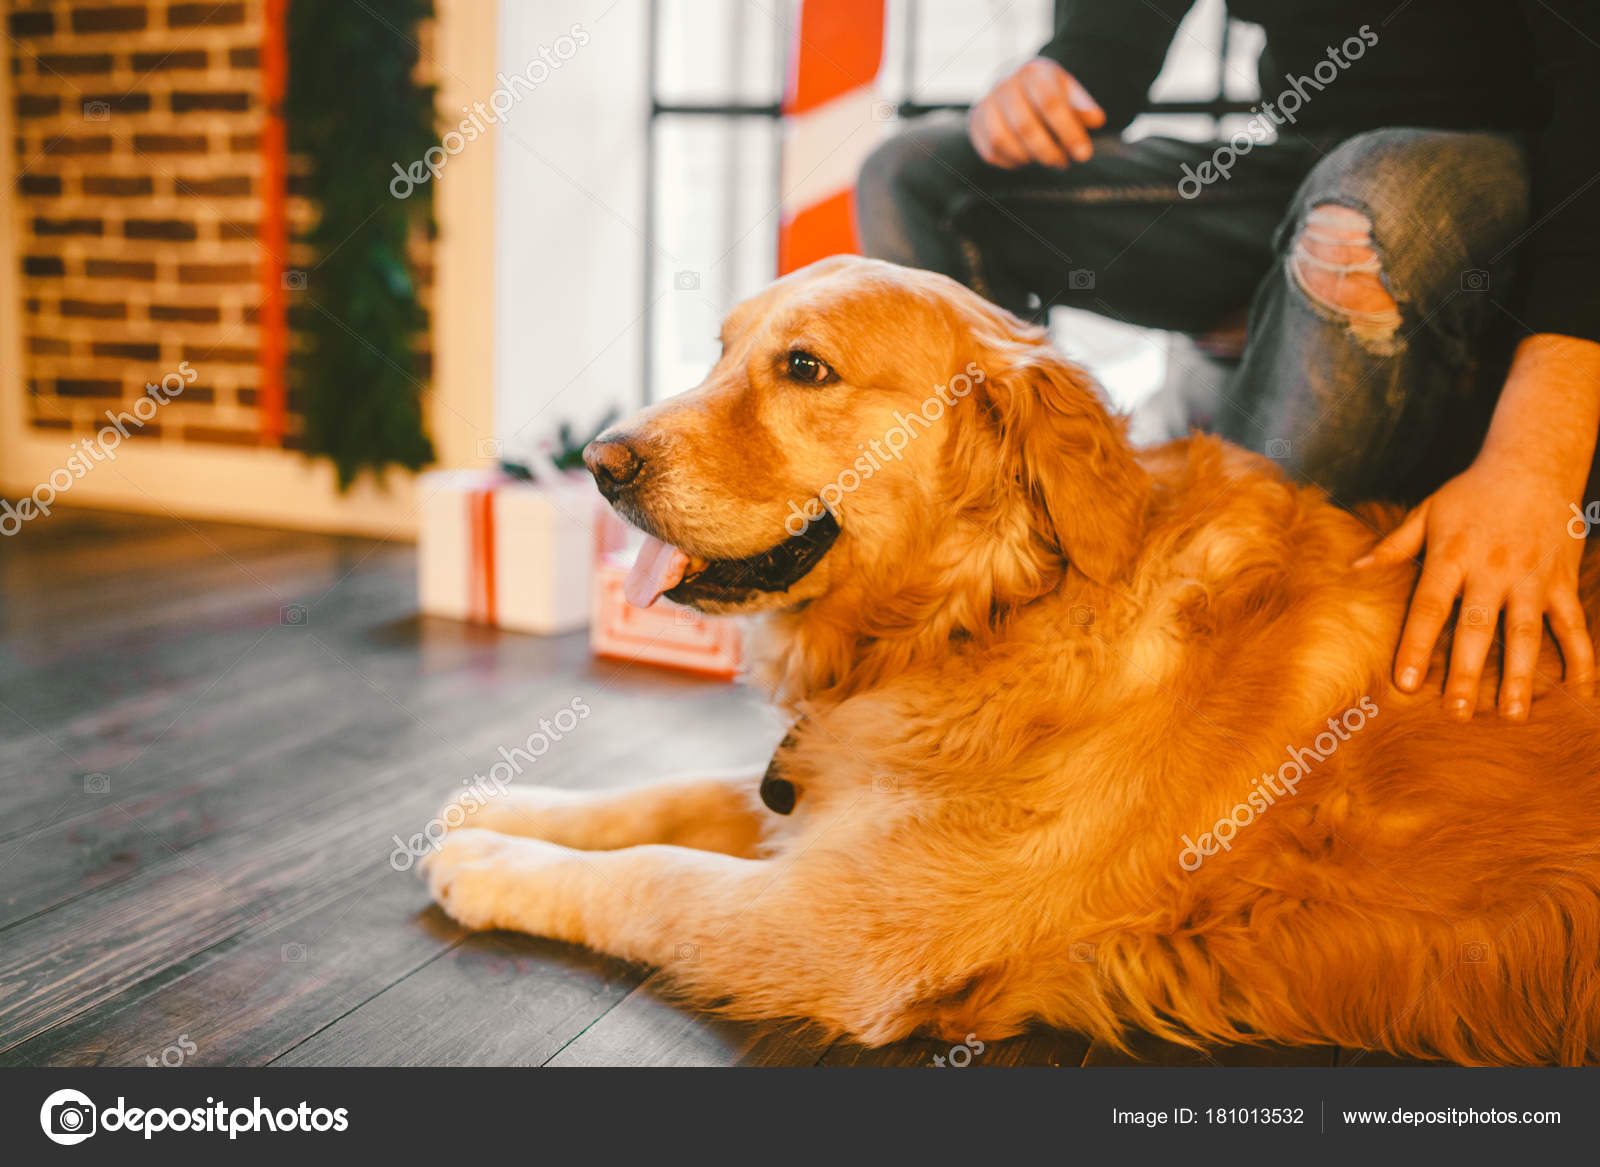 Golden Retriever Labrador Lies Next To The Owner Feet A Male Hand